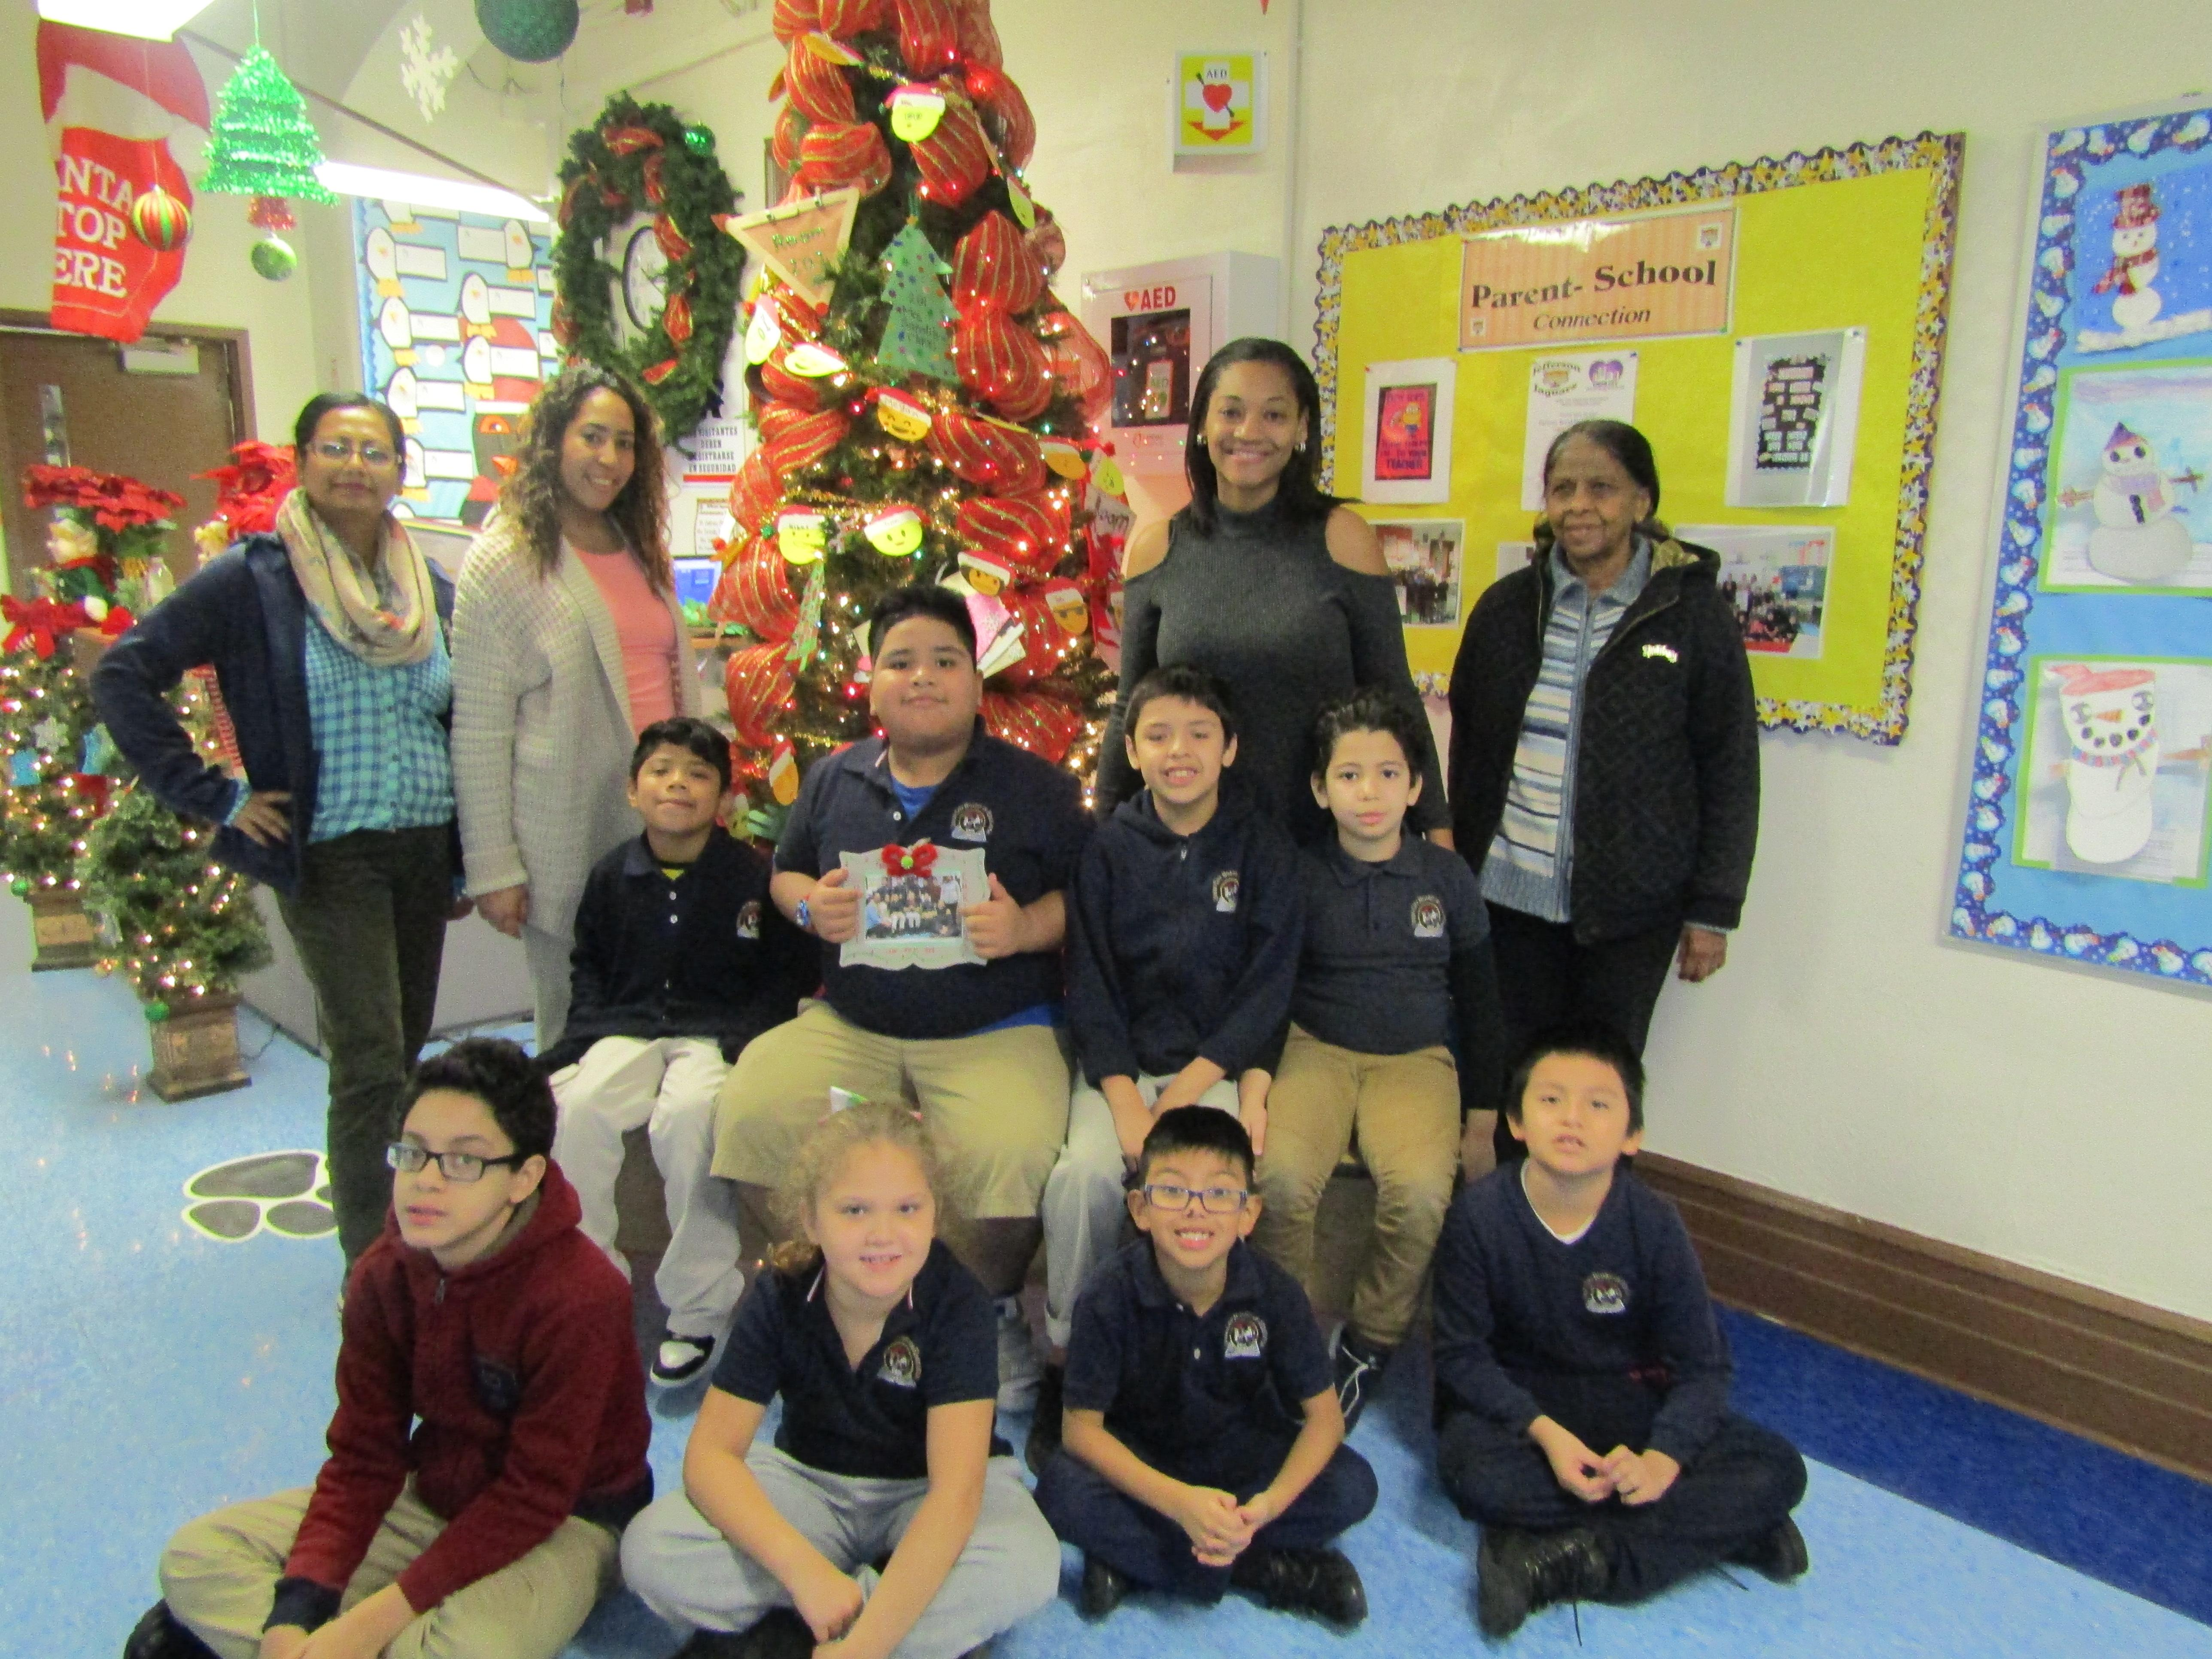 4th grade class with teacher and aide in front of the christmas tree